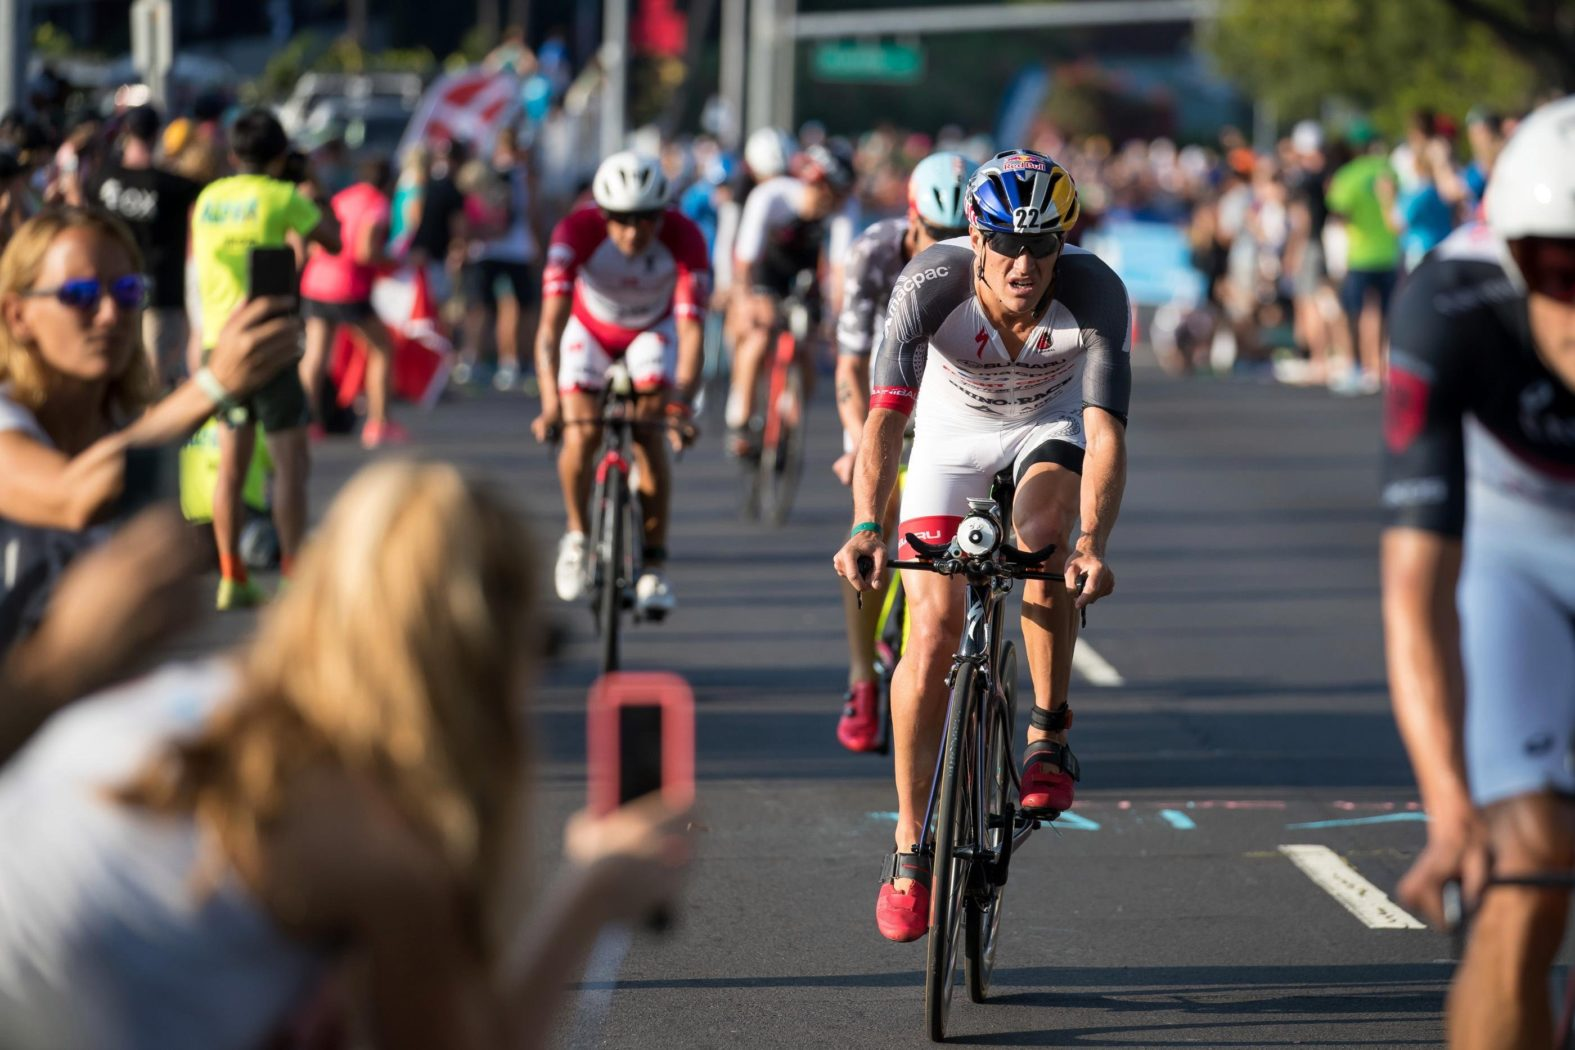 TOUGH WORLD IRONMAN DEBUT FOR CURRIE IN HAWAII